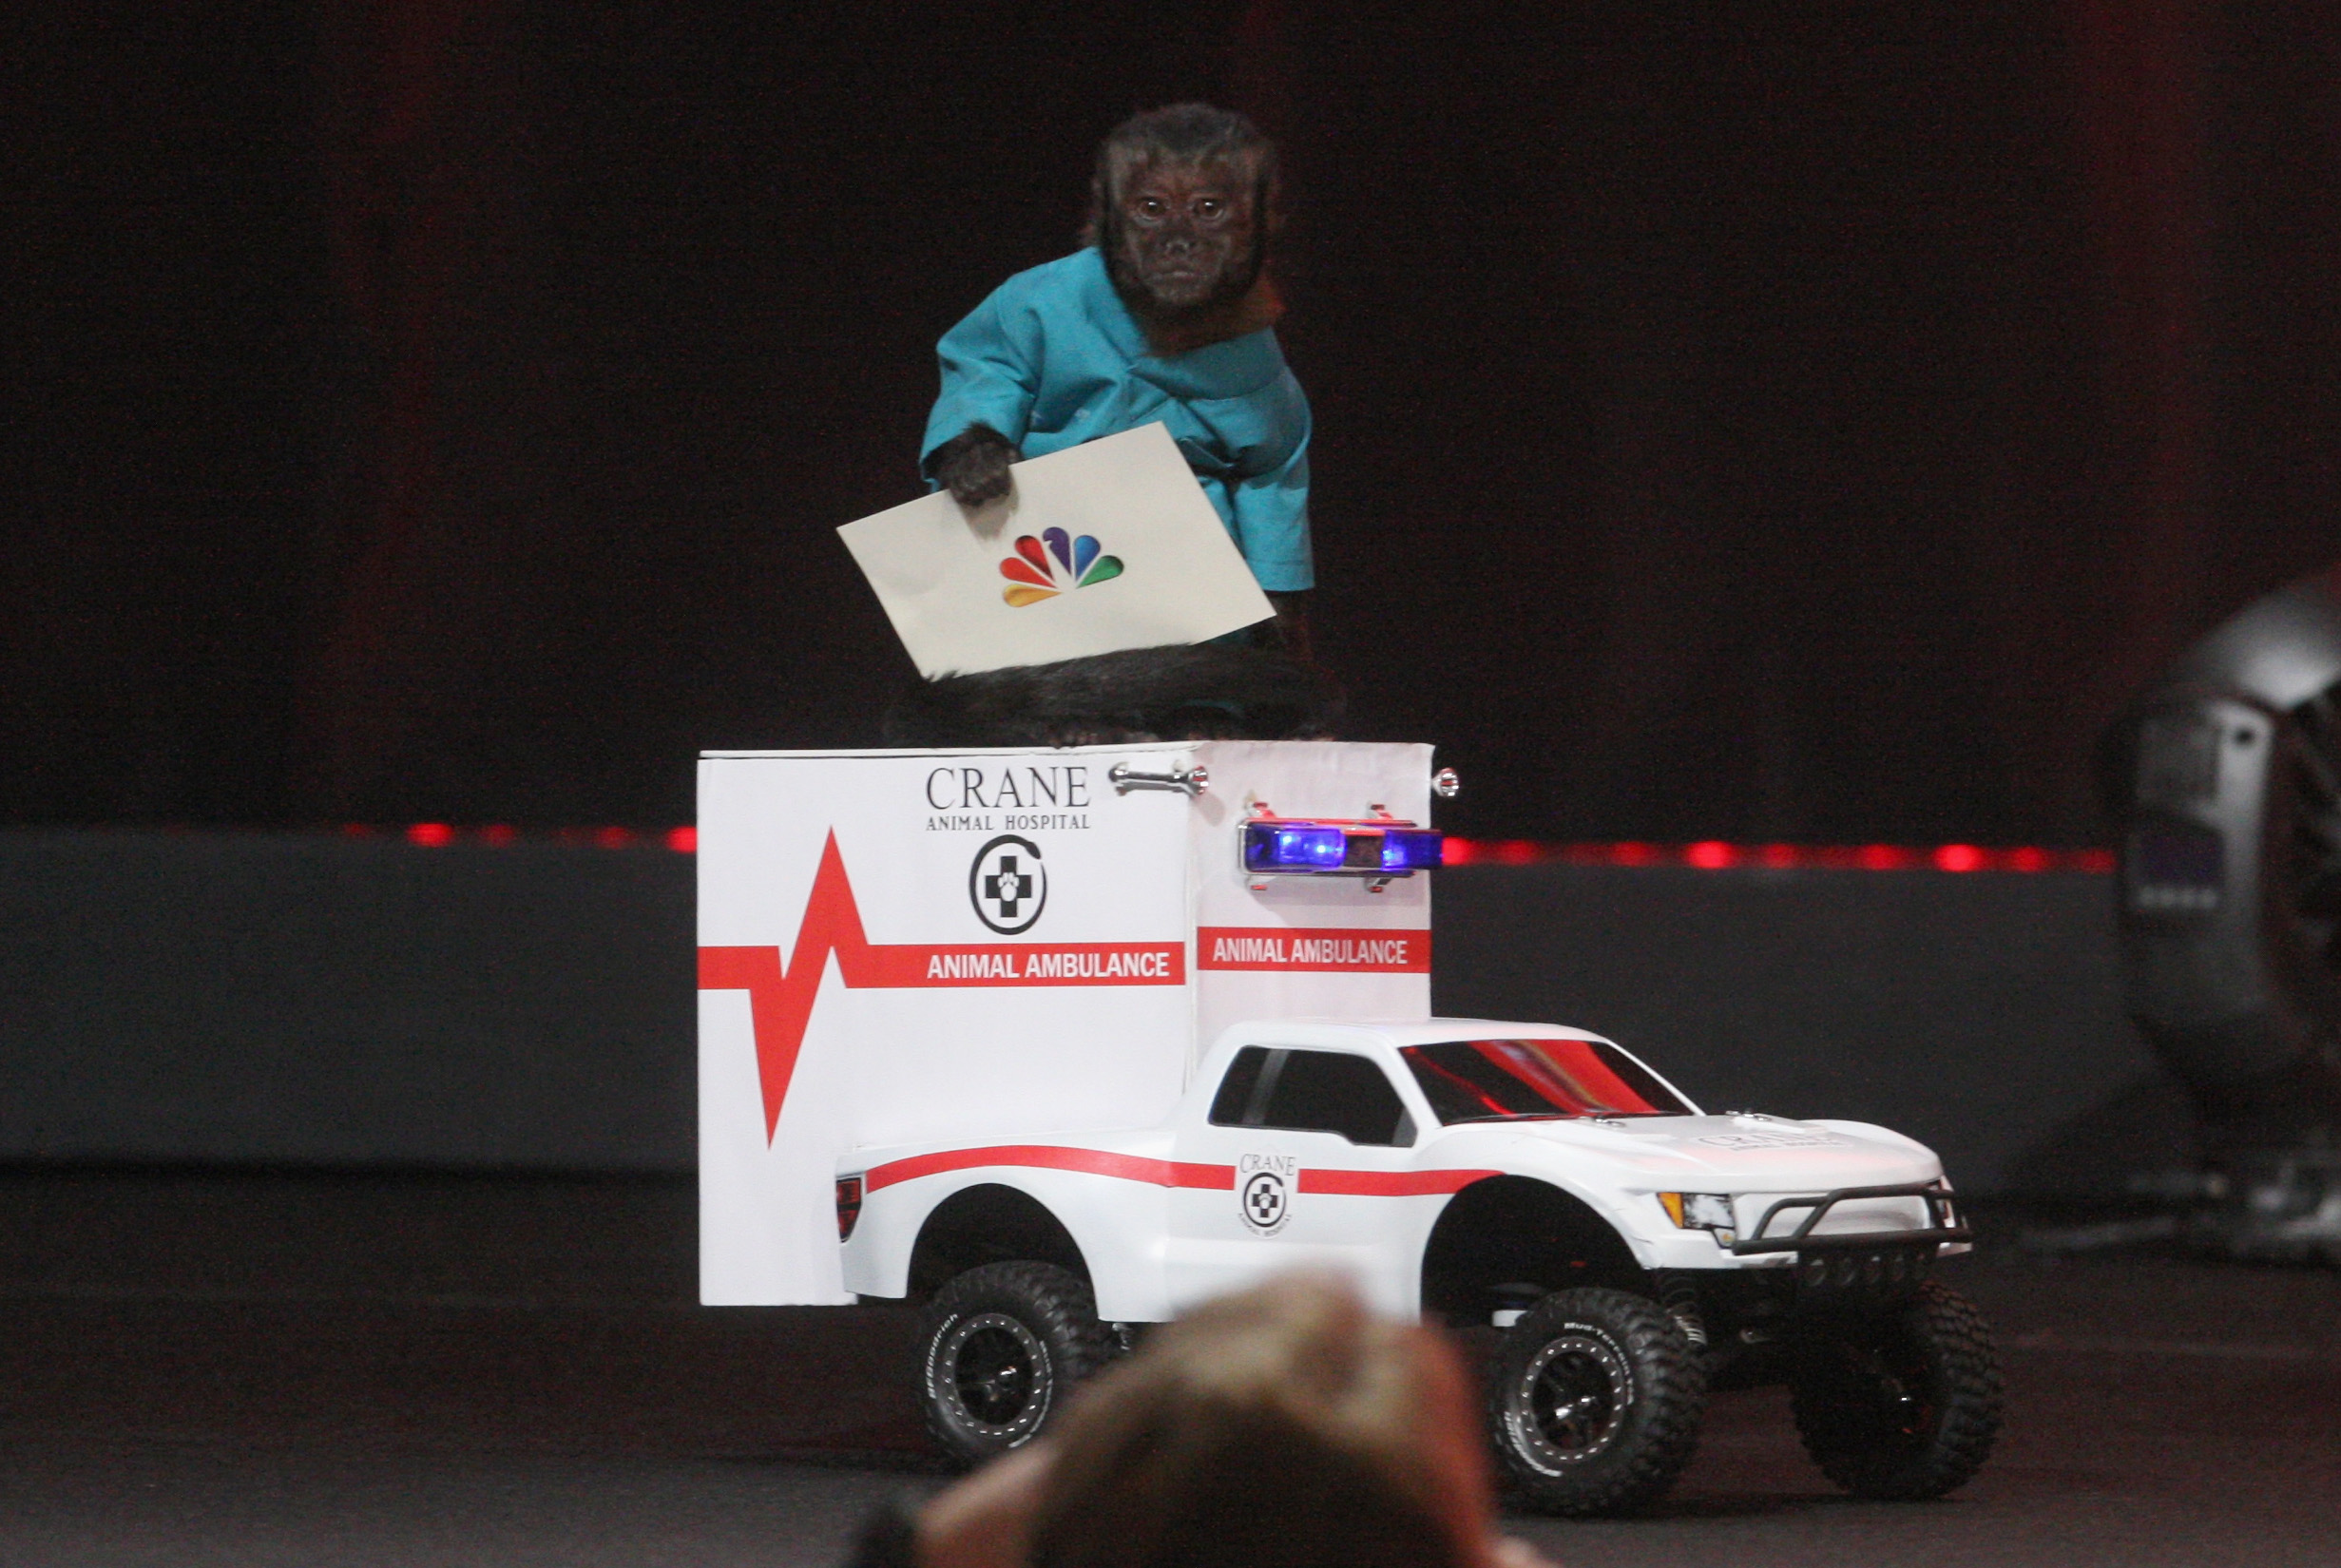 Crystal the monkey upstaged her costars when she came out atop a tiny ambulance at Animal Practice's panel.